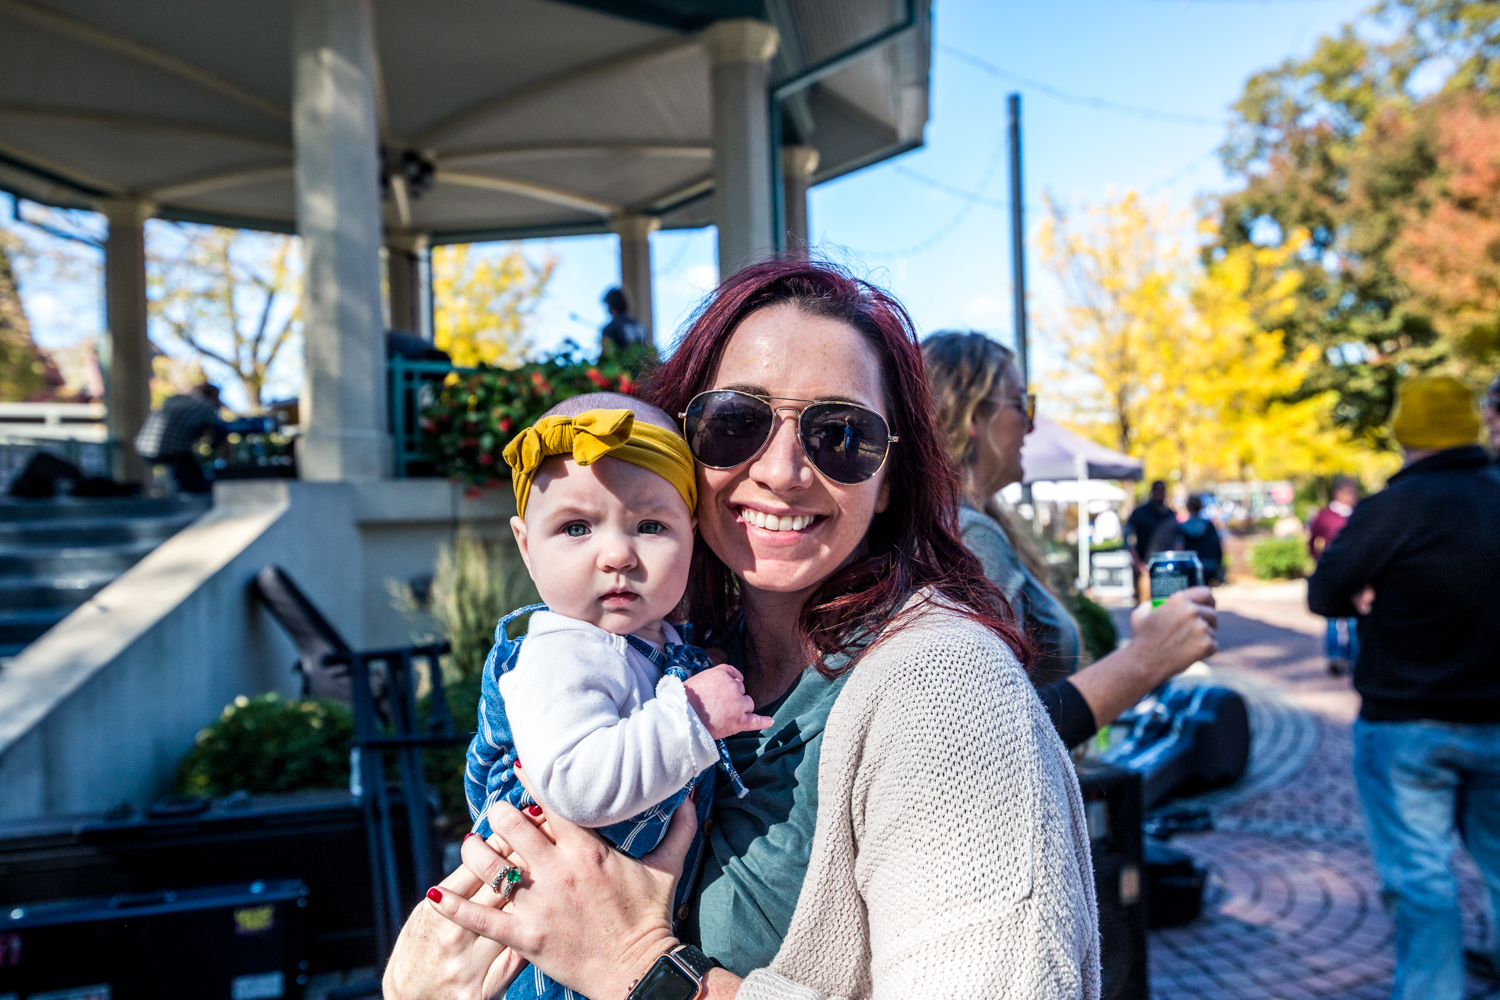 Heather & Billie Boyd at Fall Fest in Washington Park / Image: Catherine Viox // Published: 11.1.19